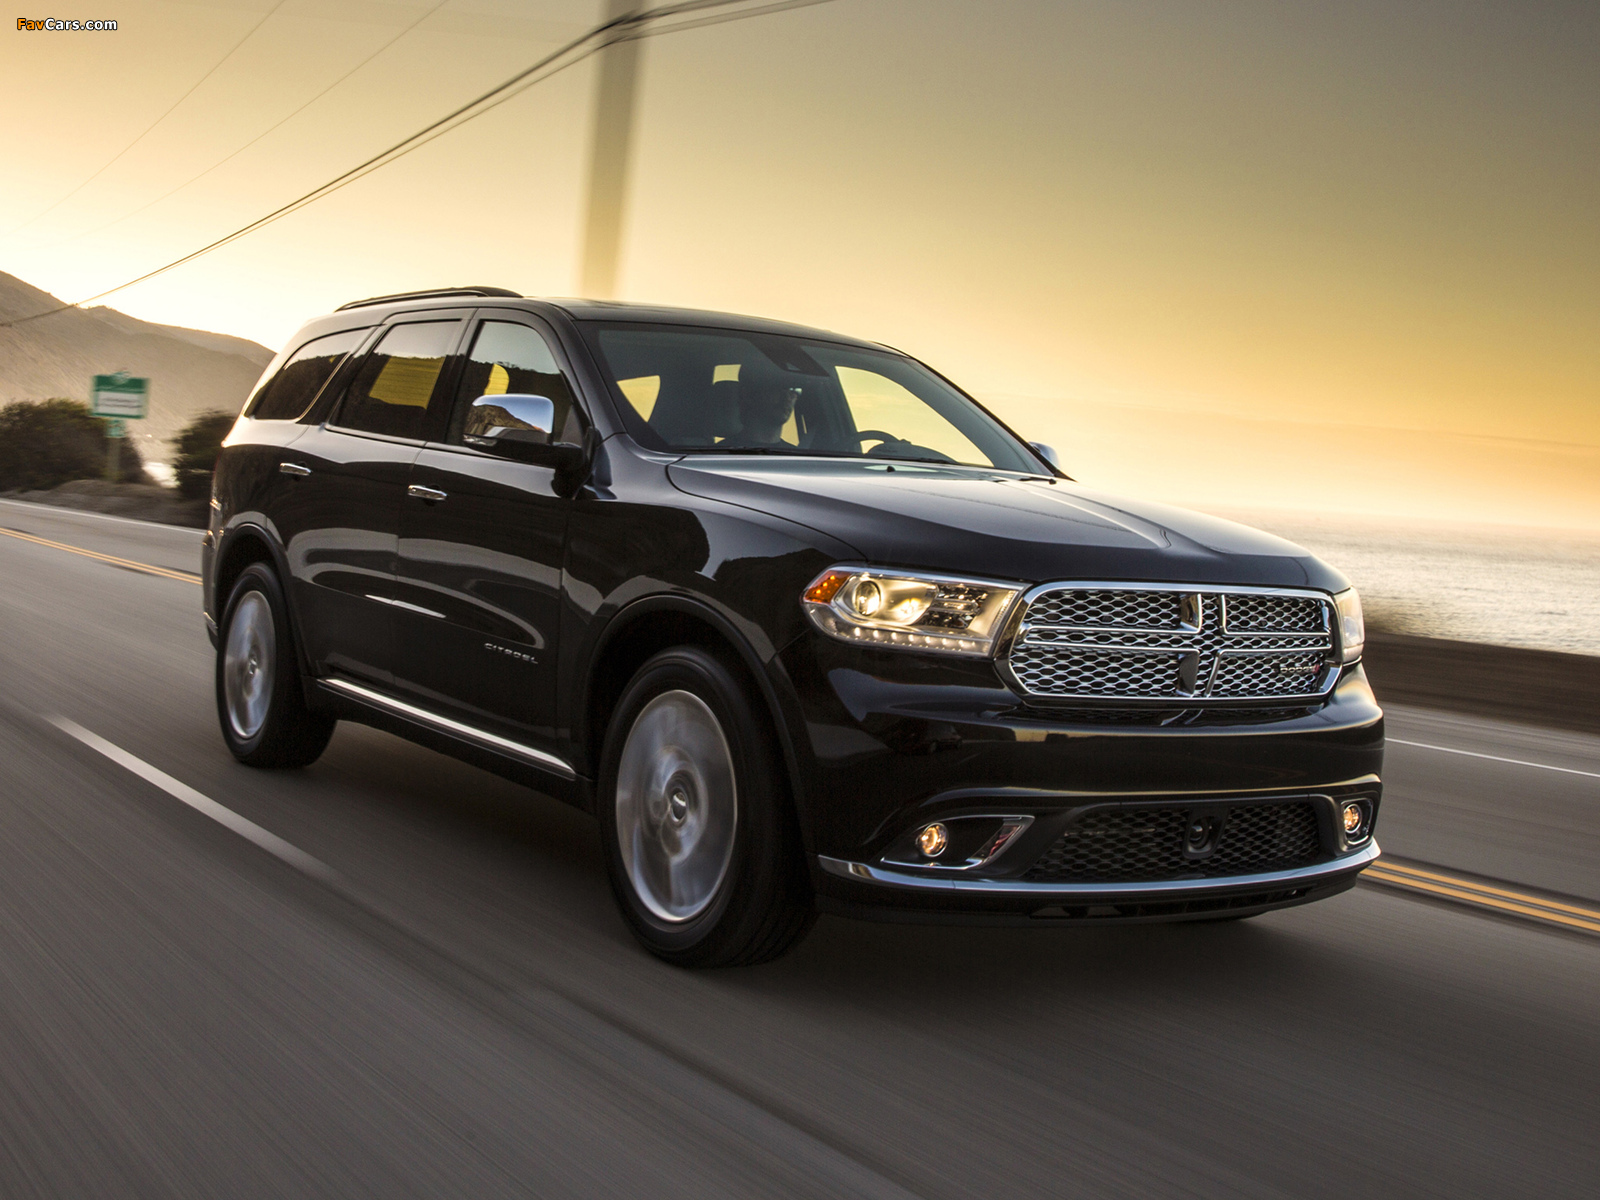 dodge durango citadel 2013 photos 1600x1200. Black Bedroom Furniture Sets. Home Design Ideas